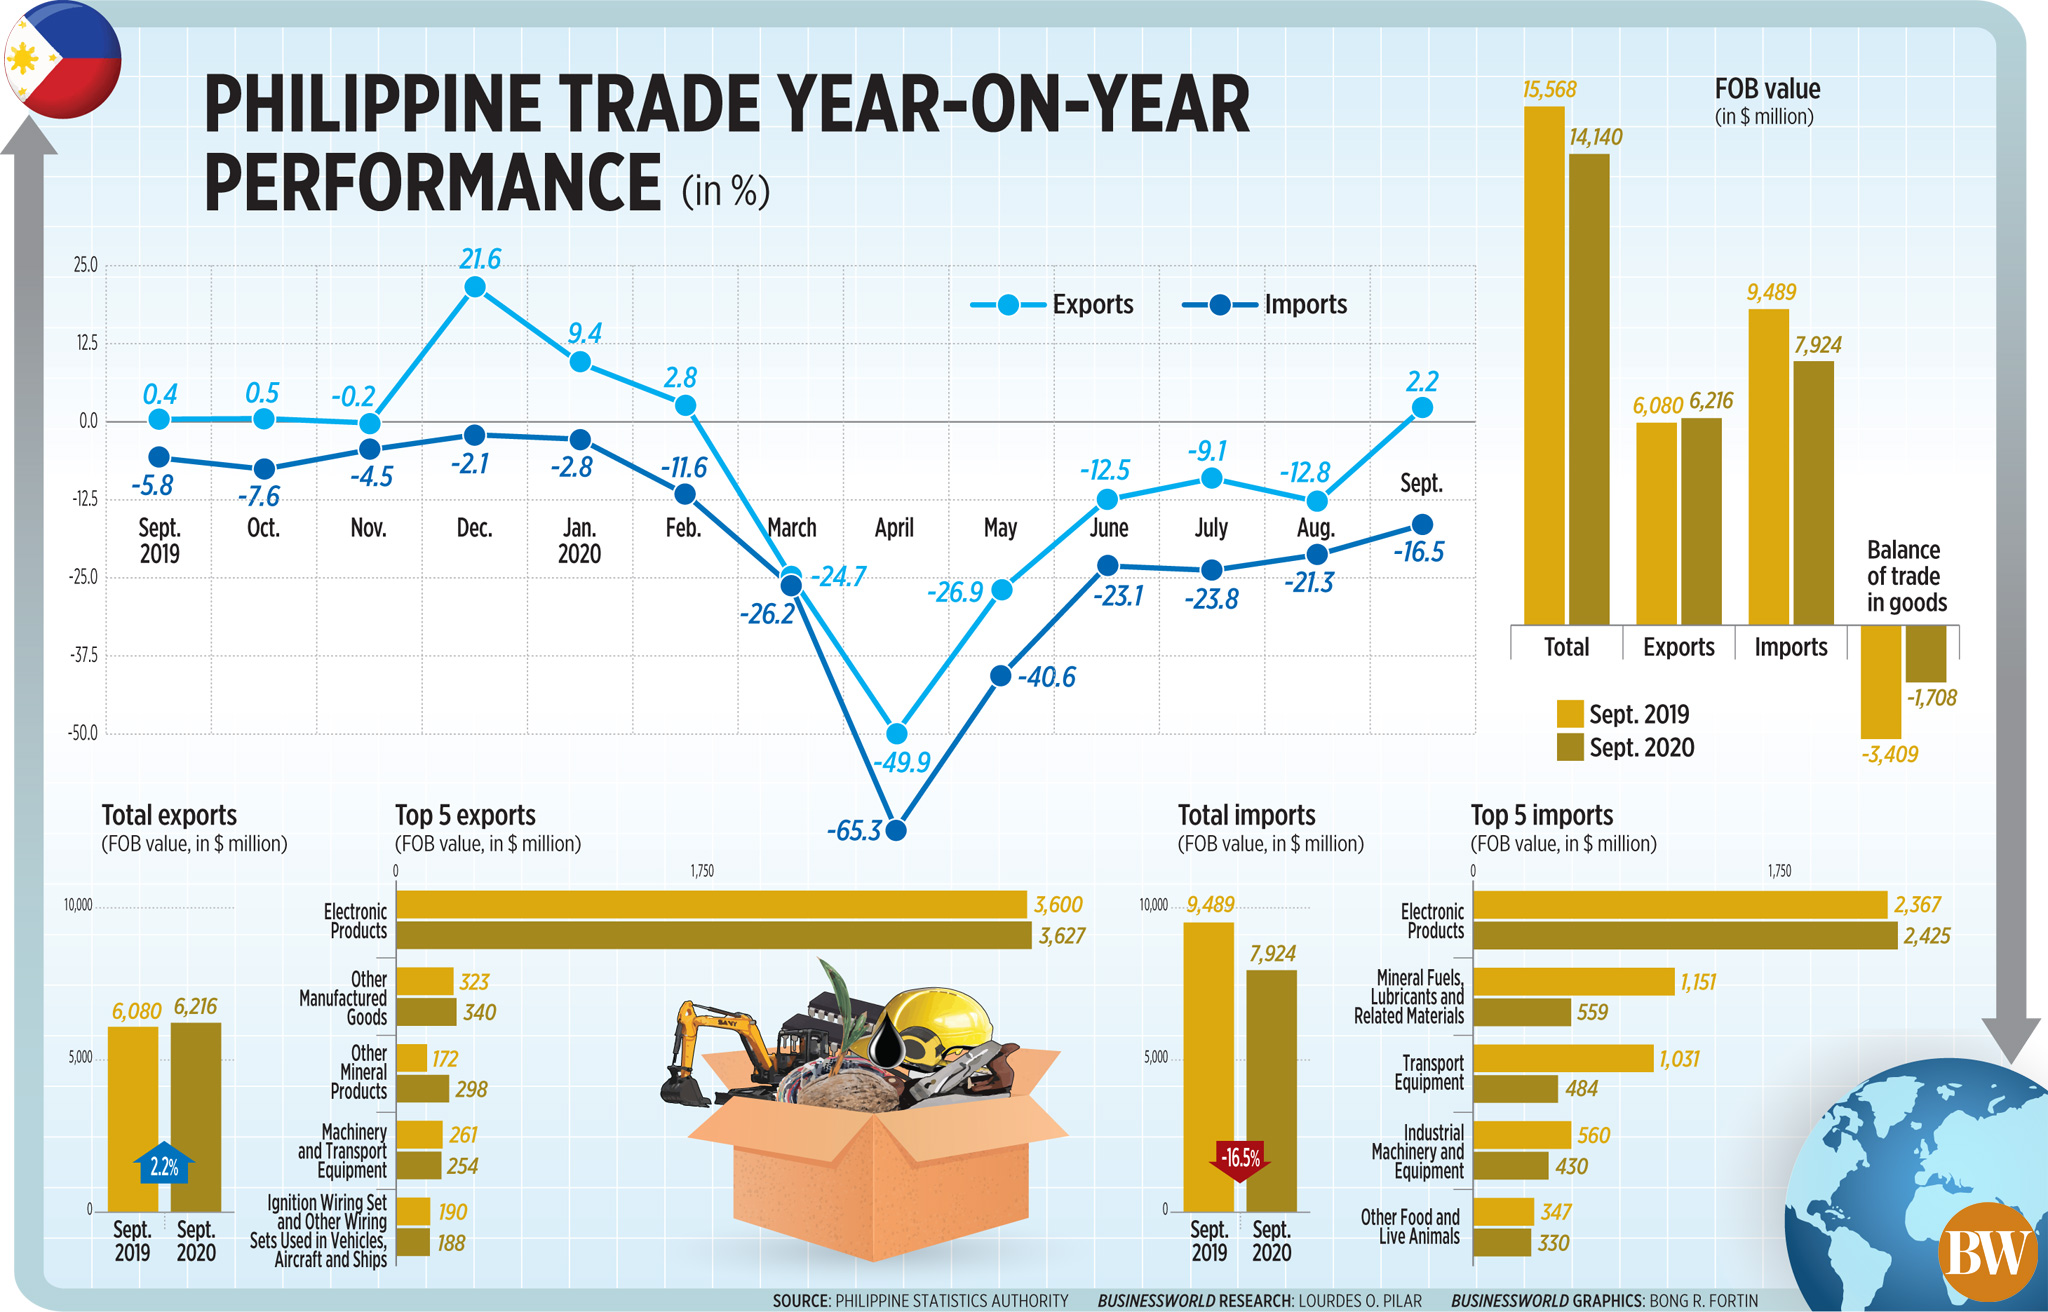 50566024211 f03132ac9e o - Philippine trade year-on-year performance (Sept. 2020)